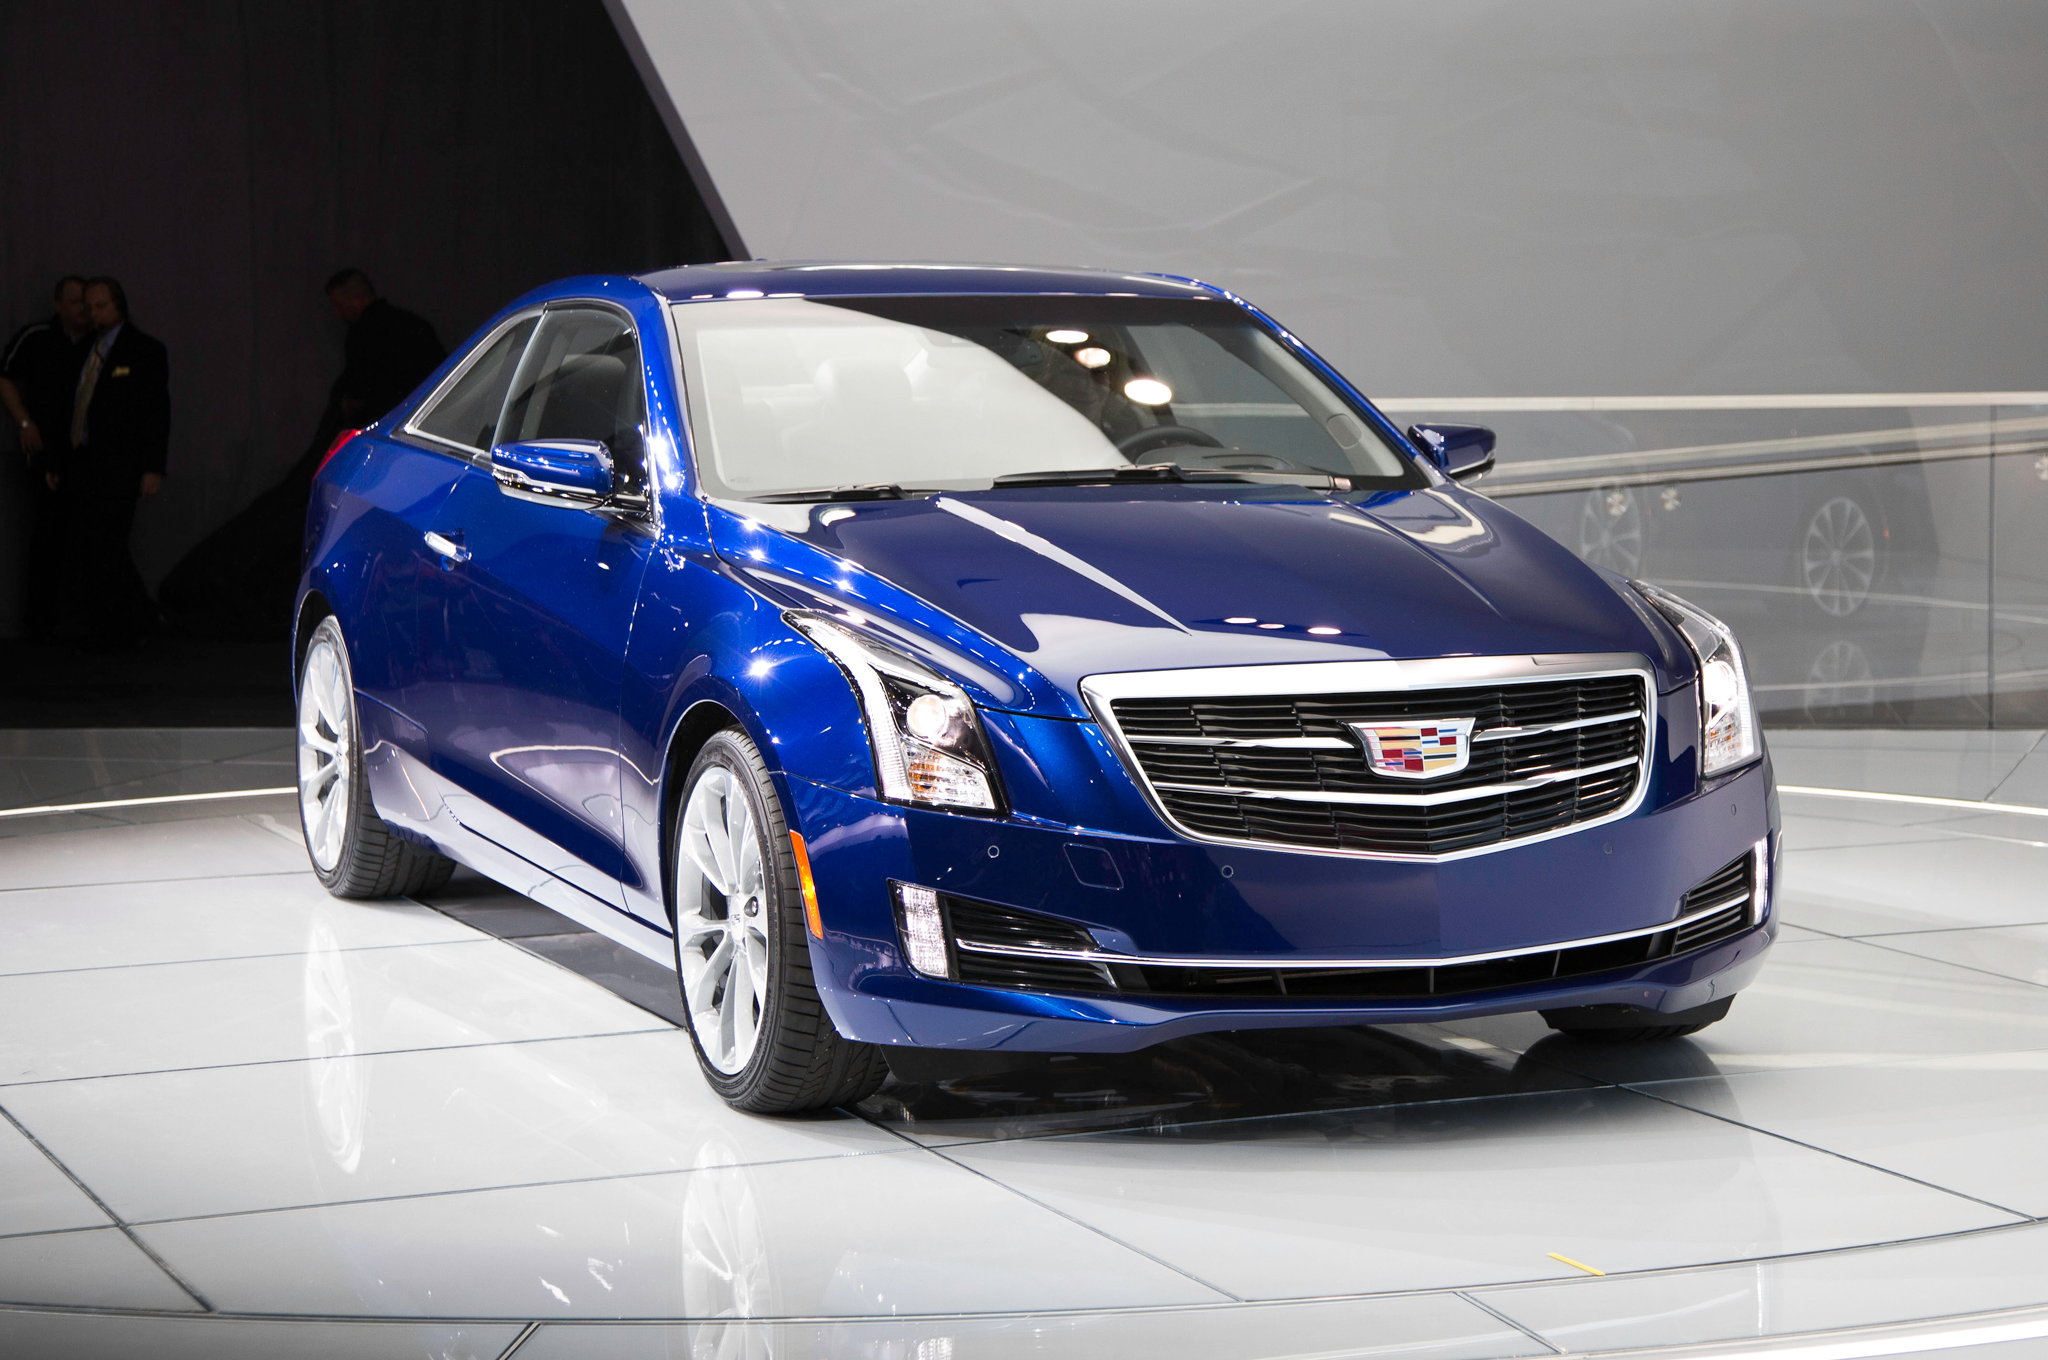 2015 Cadillac Ats Coupe Front Close Up (View 17 of 21)